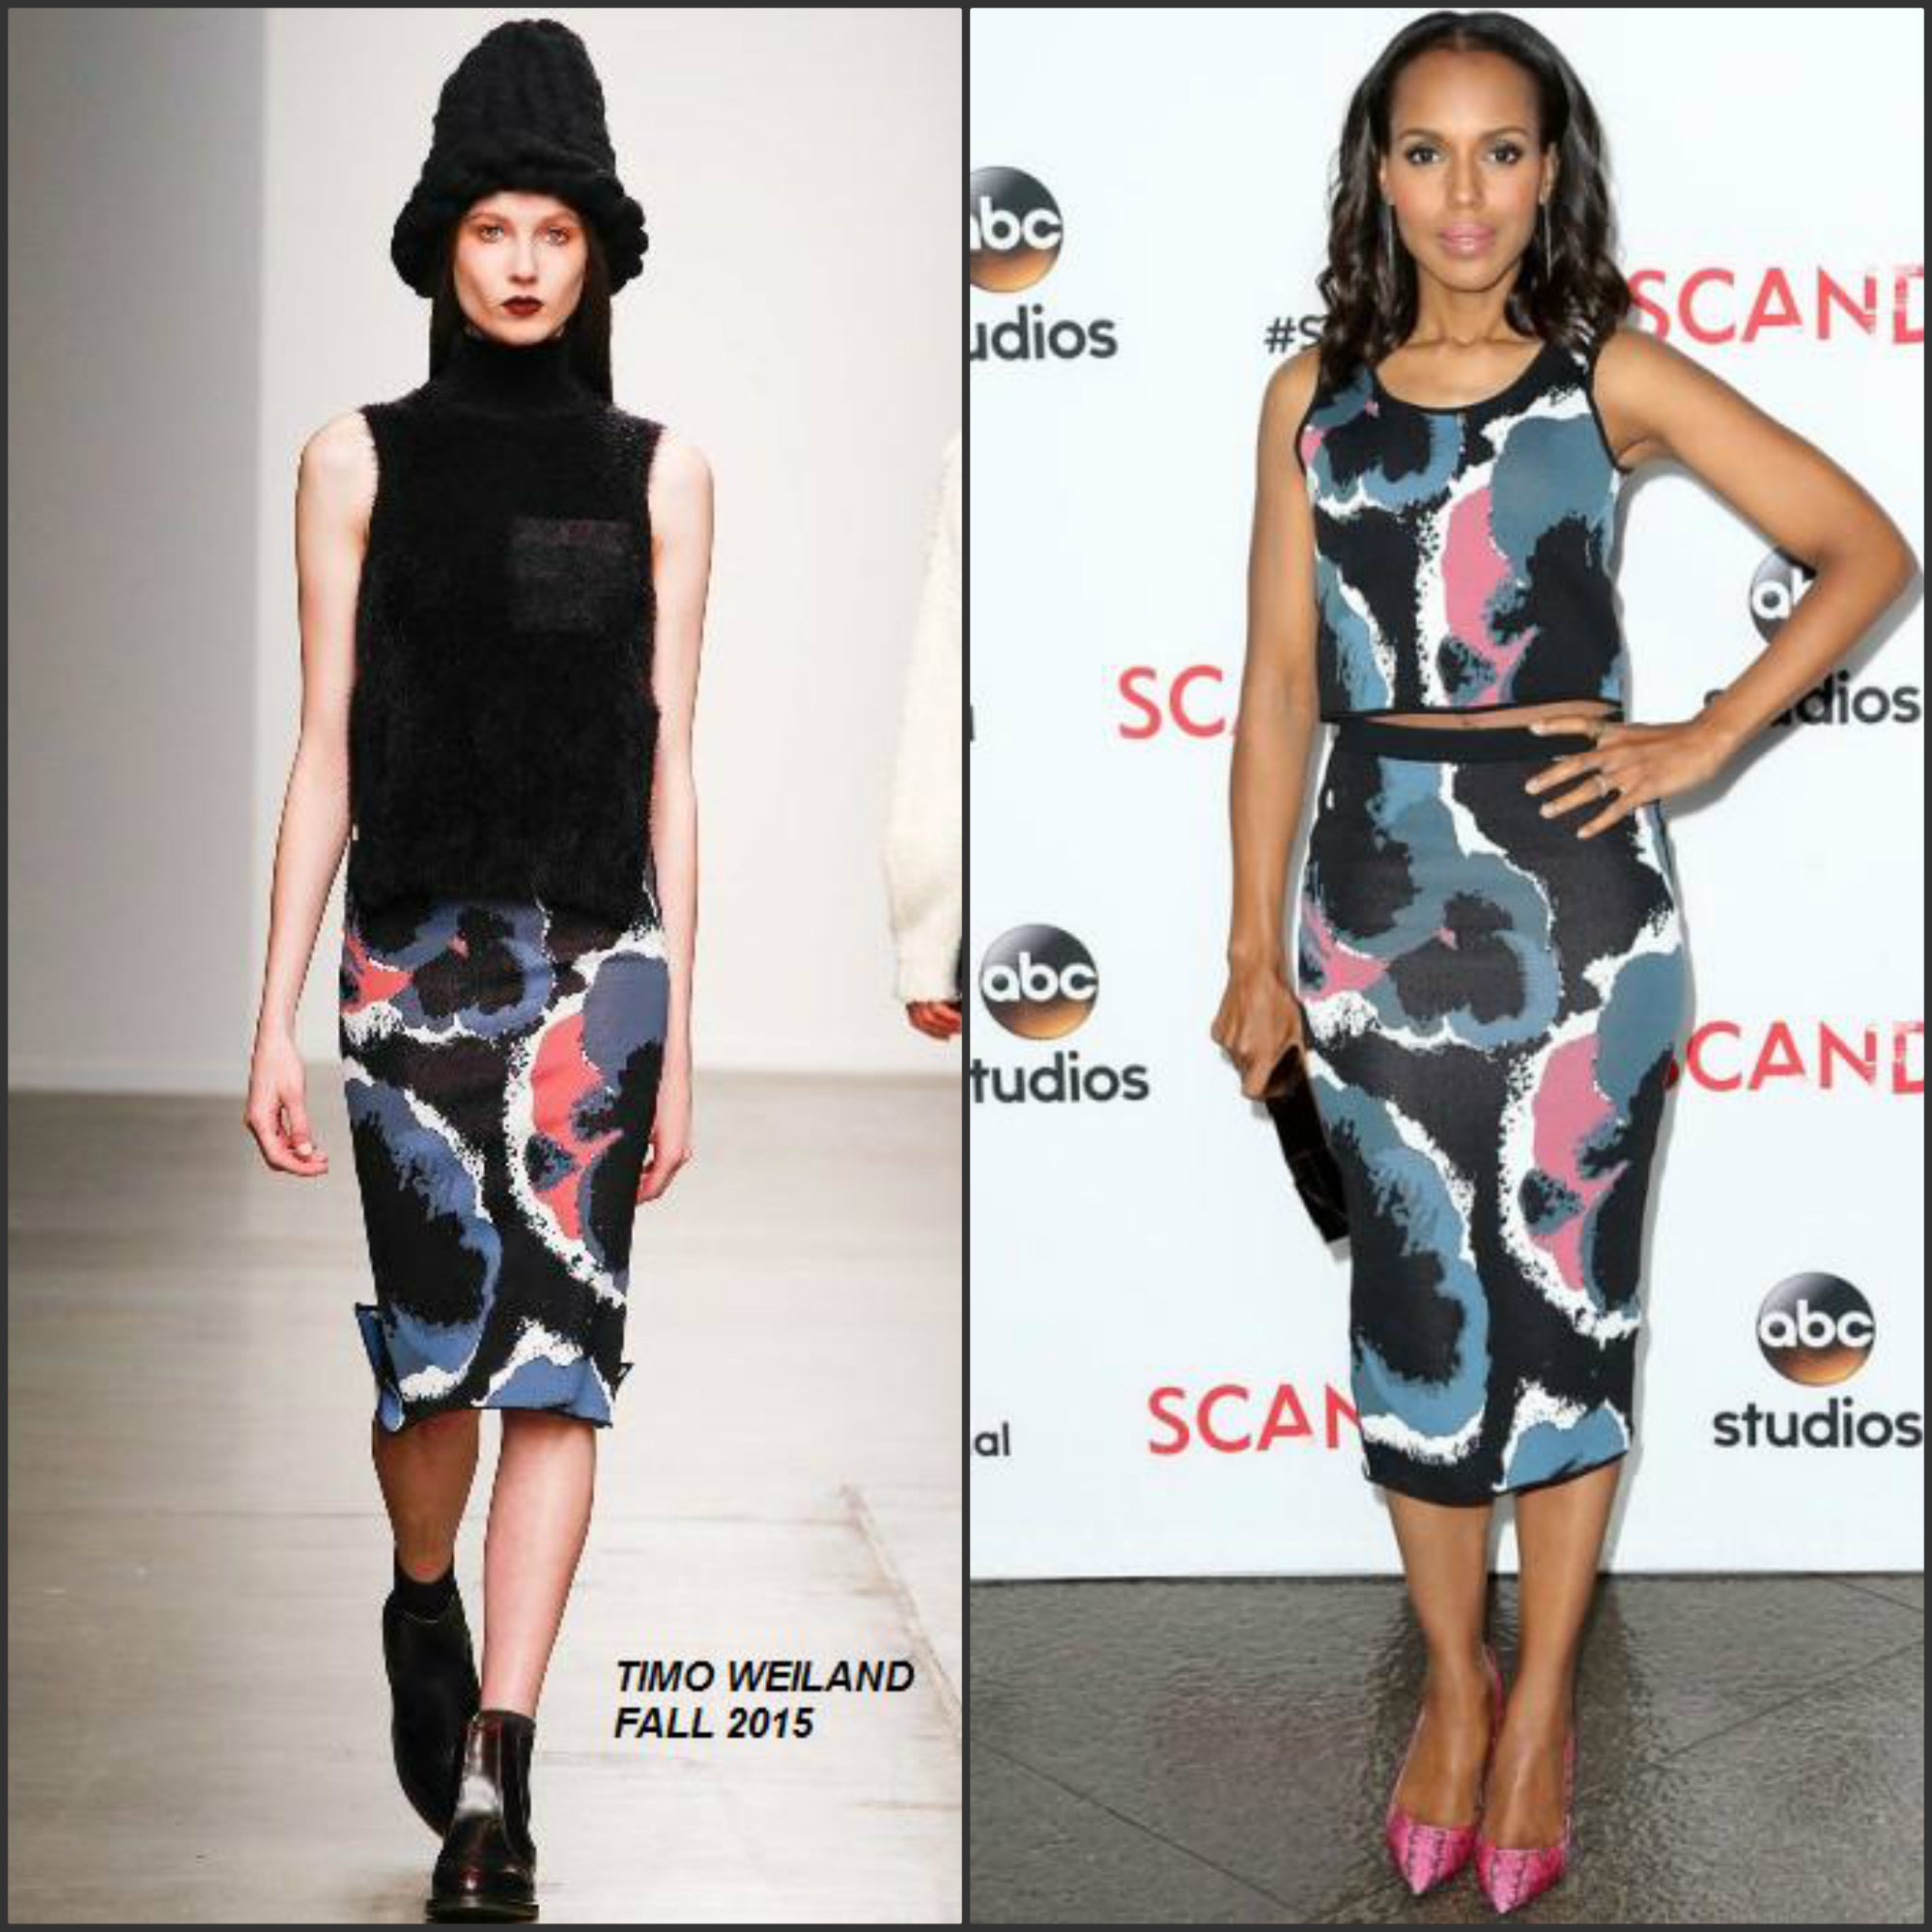 kerry-washington-in-two-weiland-scandal-atas-event